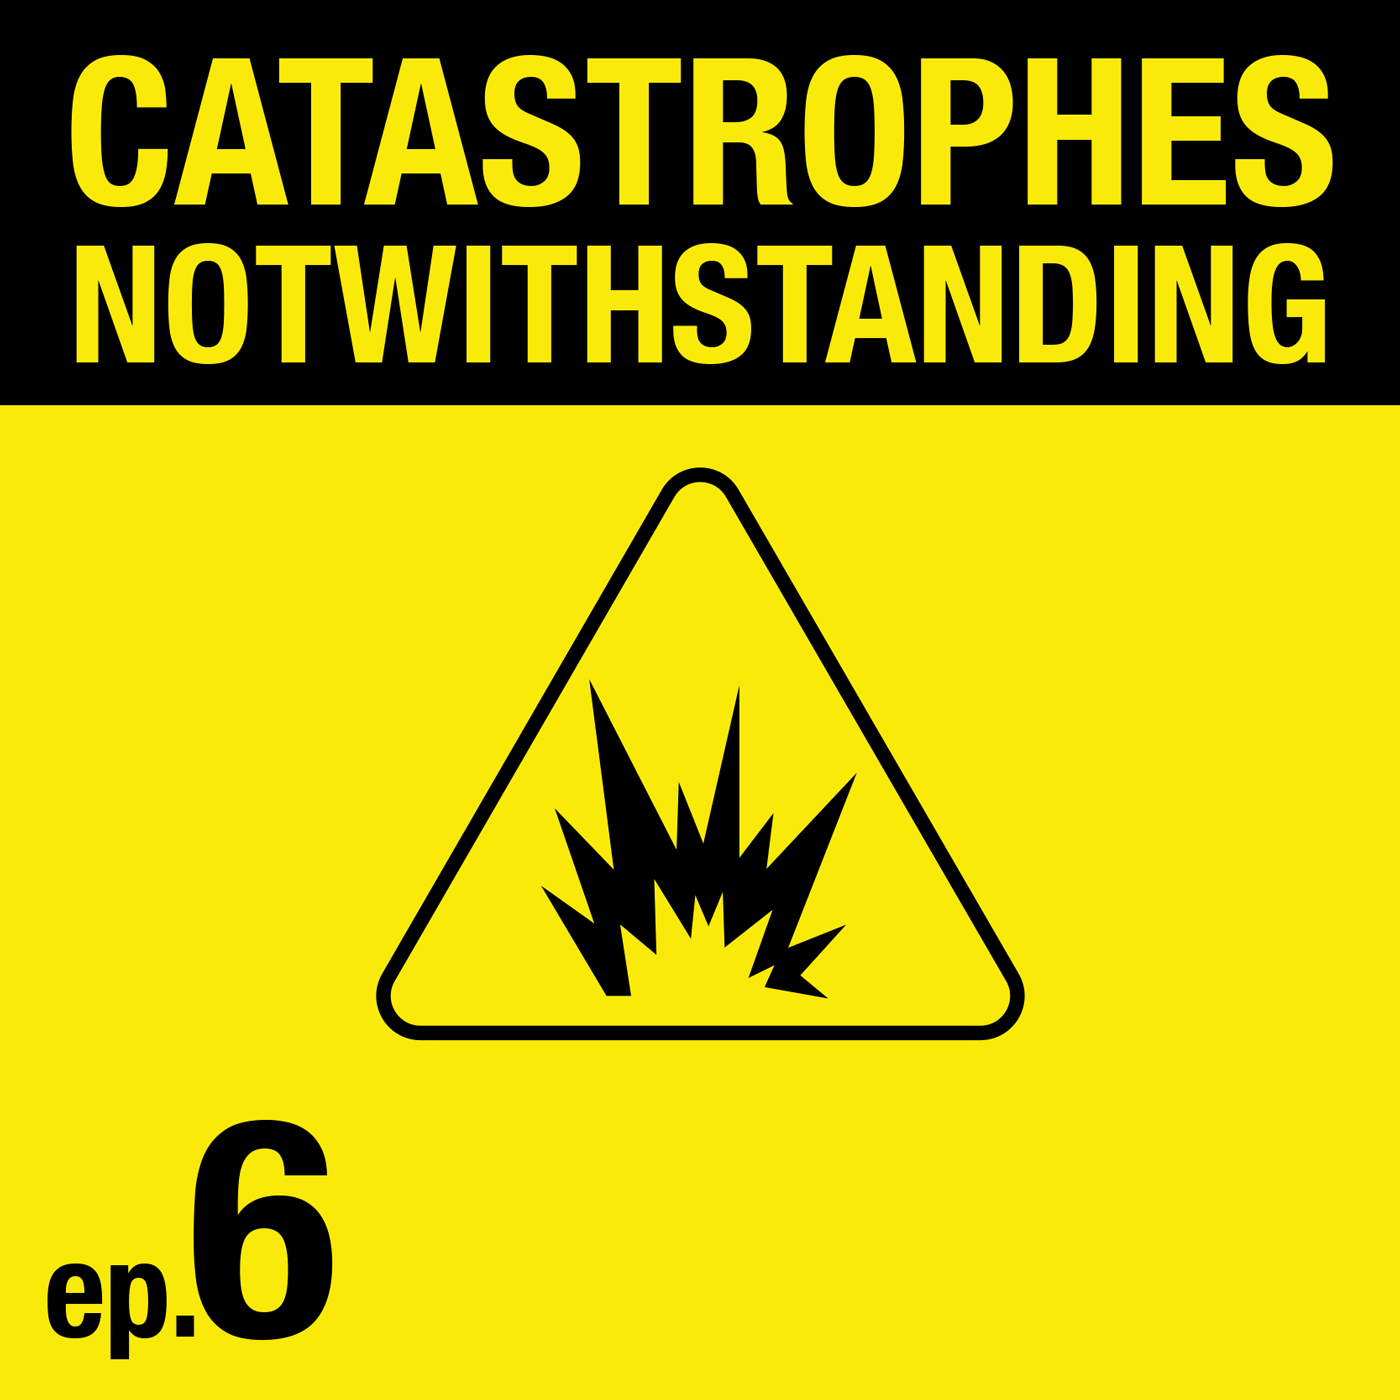 Cover Image of Catastrophes Notwithstanding Episode 6